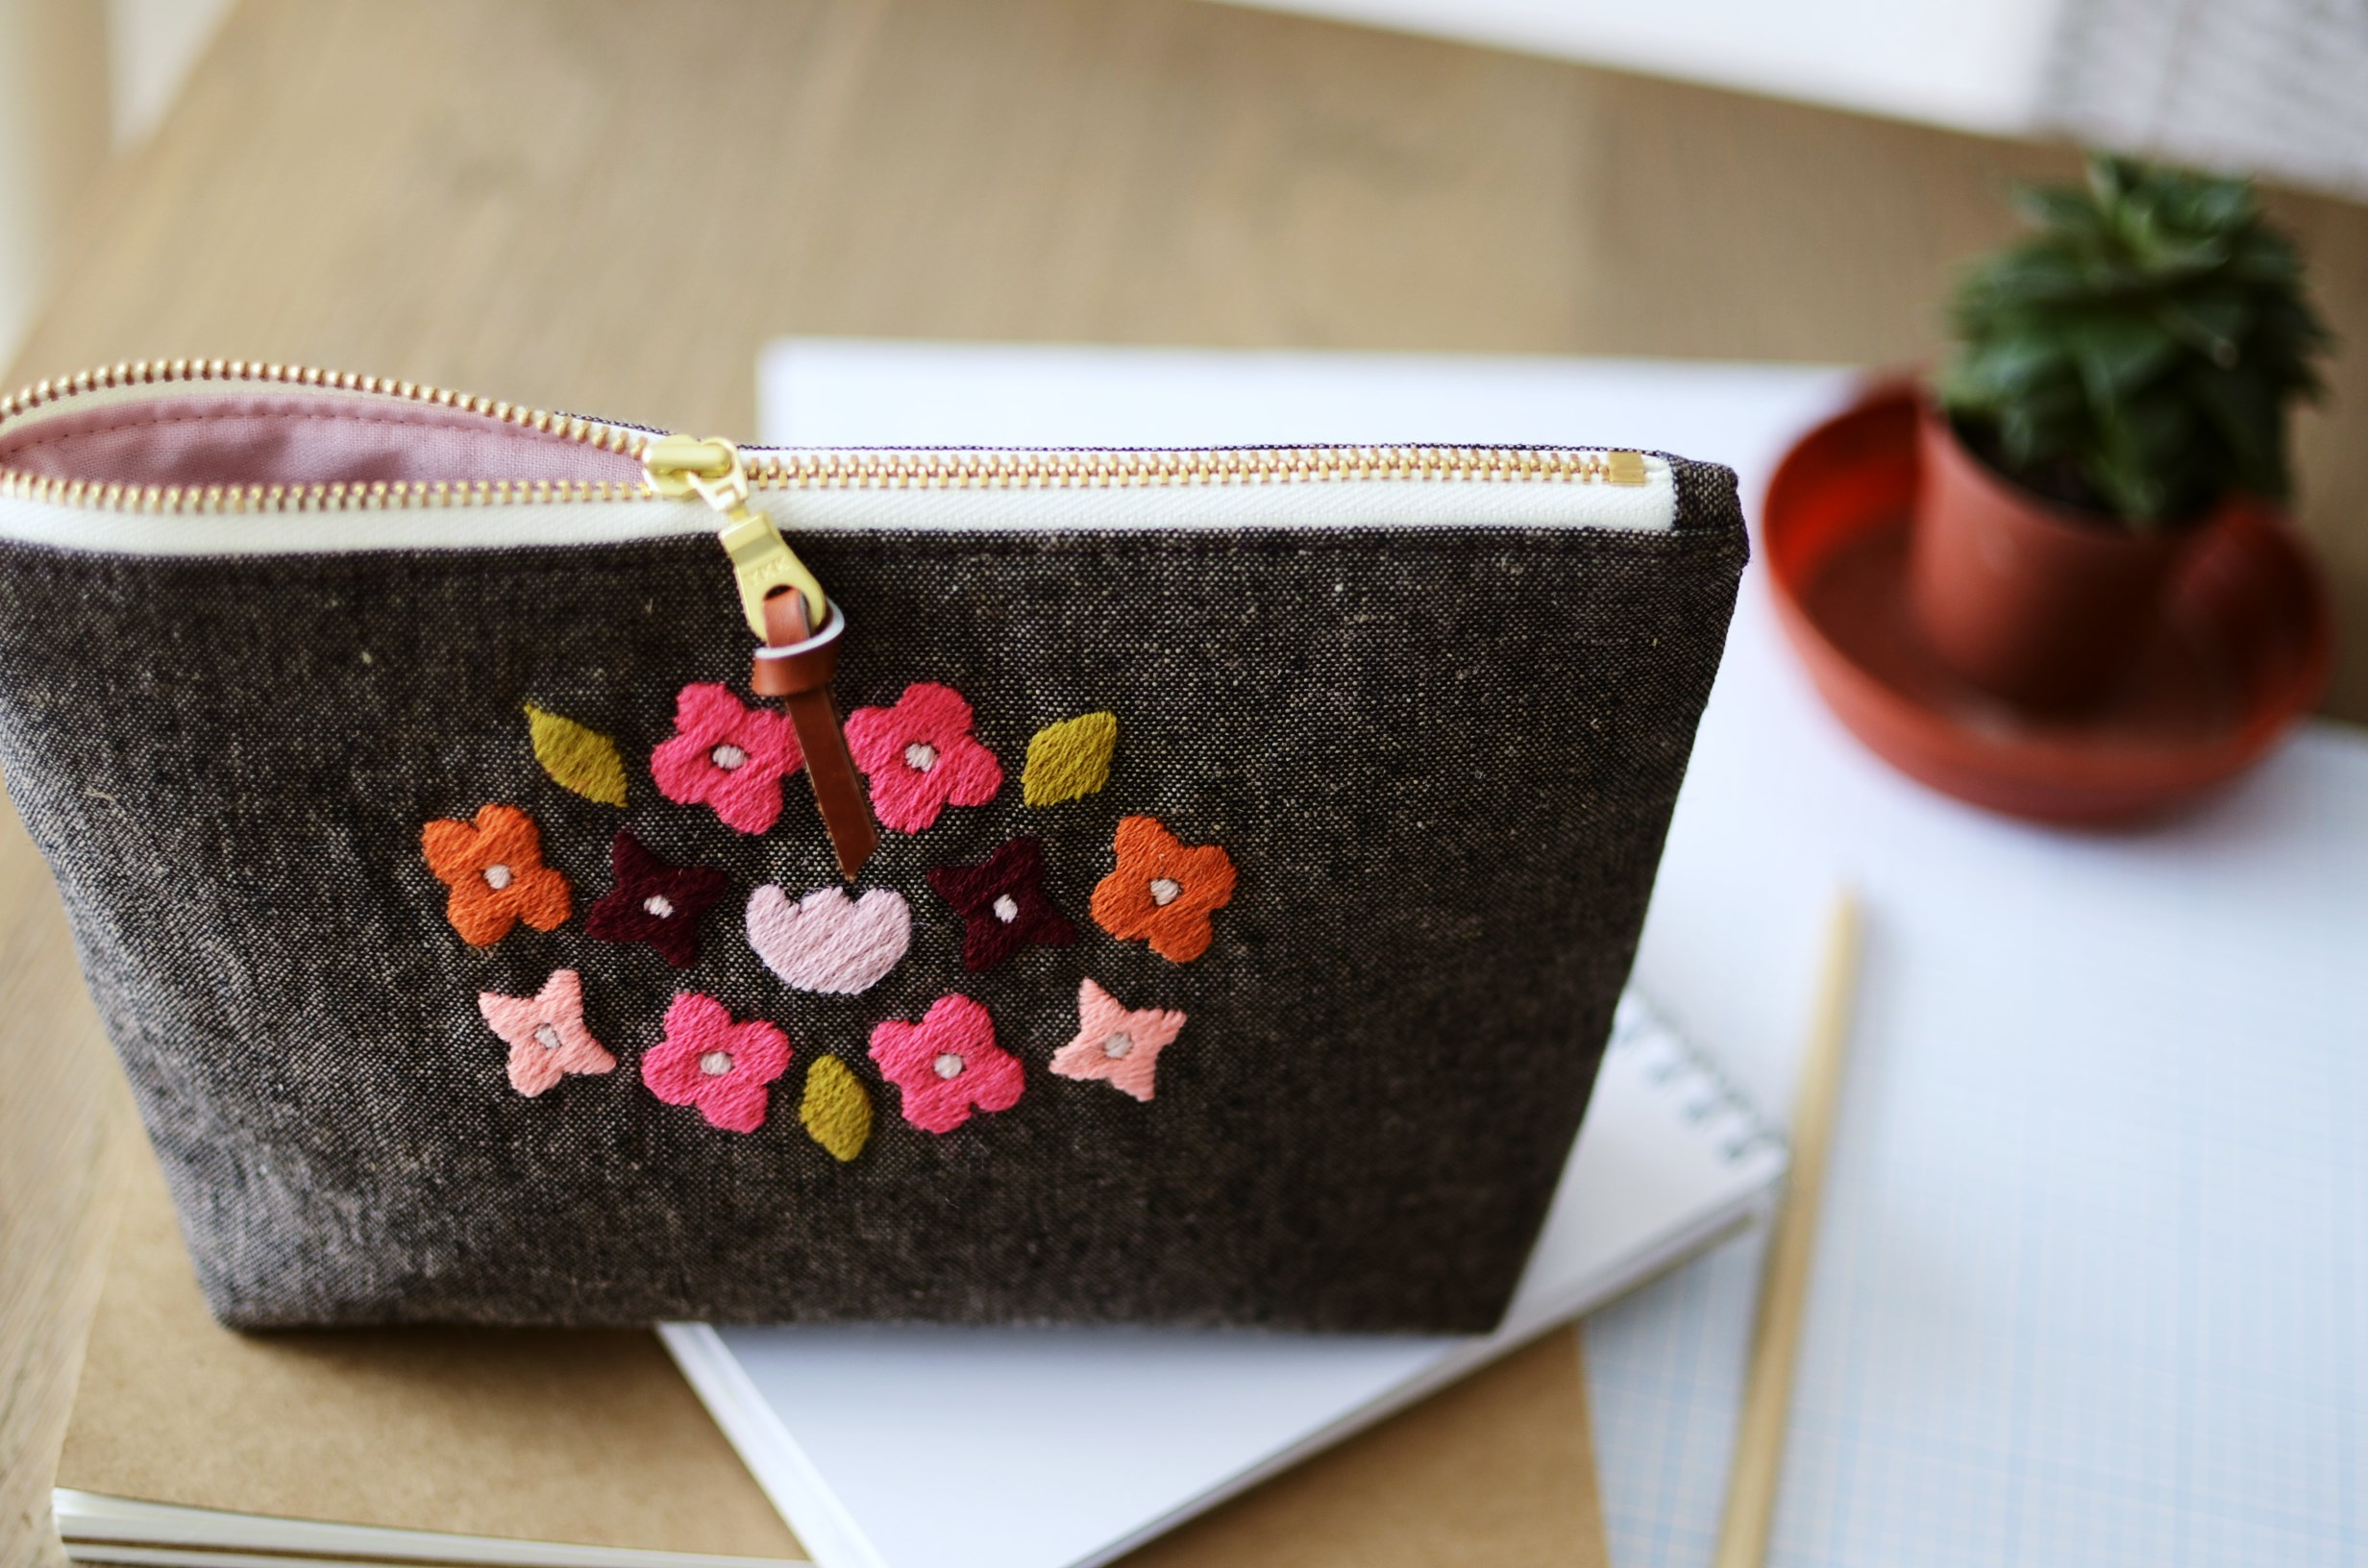 Daydream pouch from Stitch And Sew book by Aneela Hoey.JPG